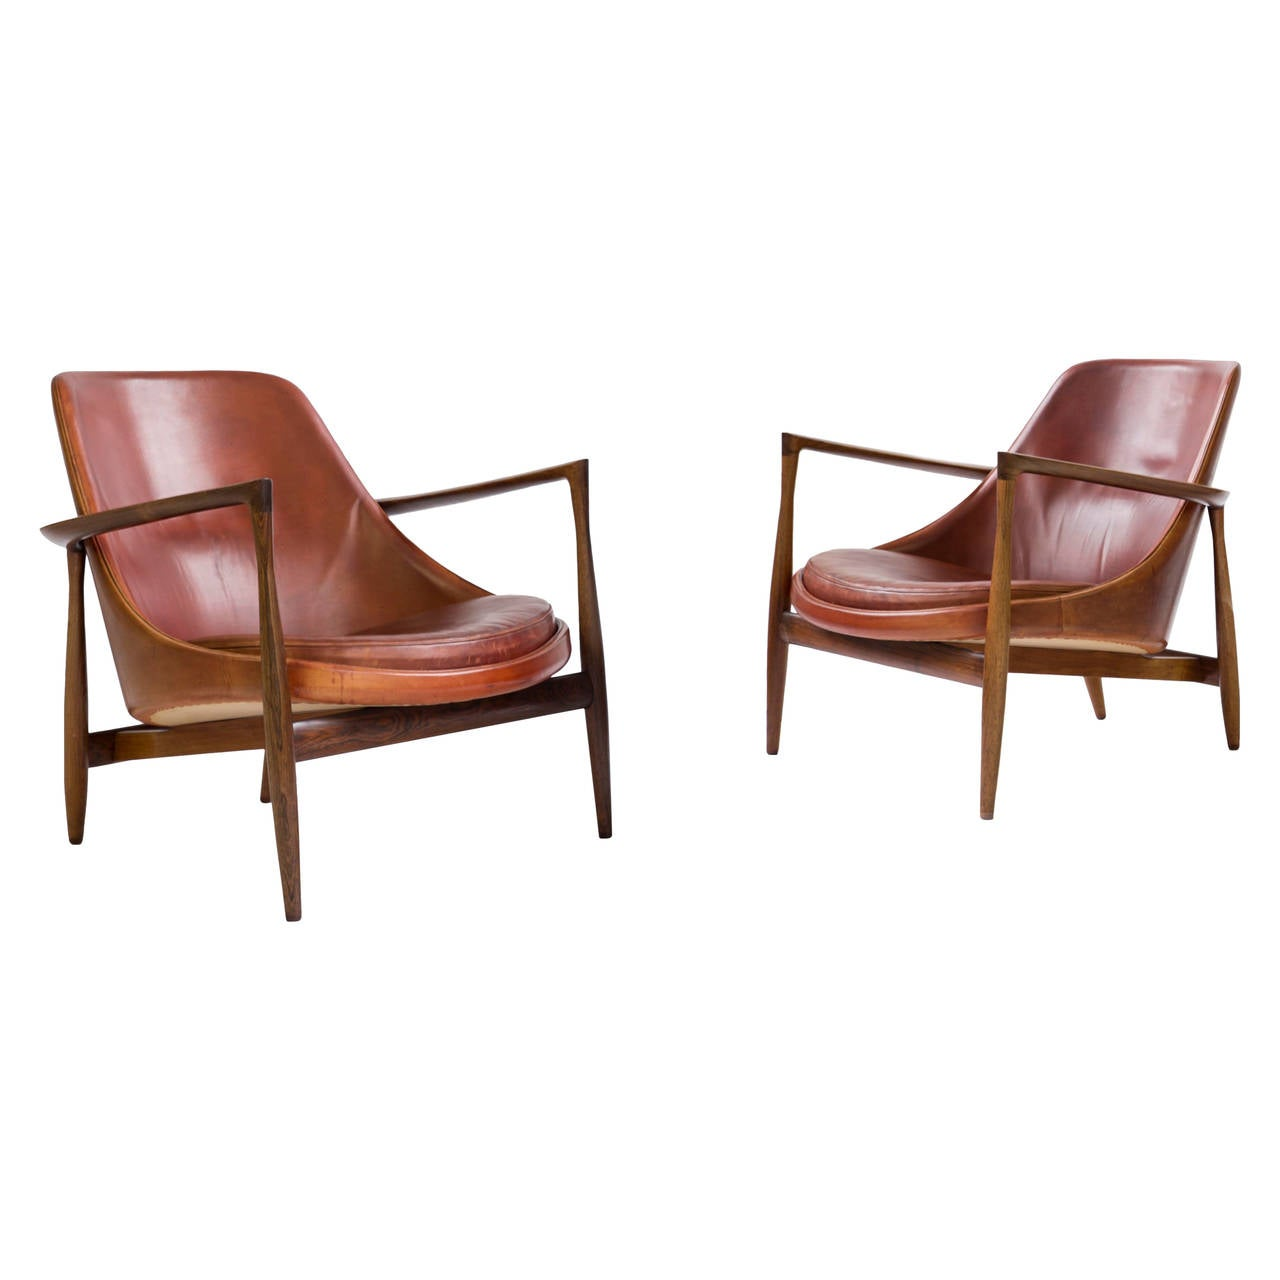 This sculptural pair of lounge chairs by ib kofod larsen is no longer - Pair Of Ib Kofod Larsen Rosewood Elizabeth Chairs For Christensen And Larsen 1